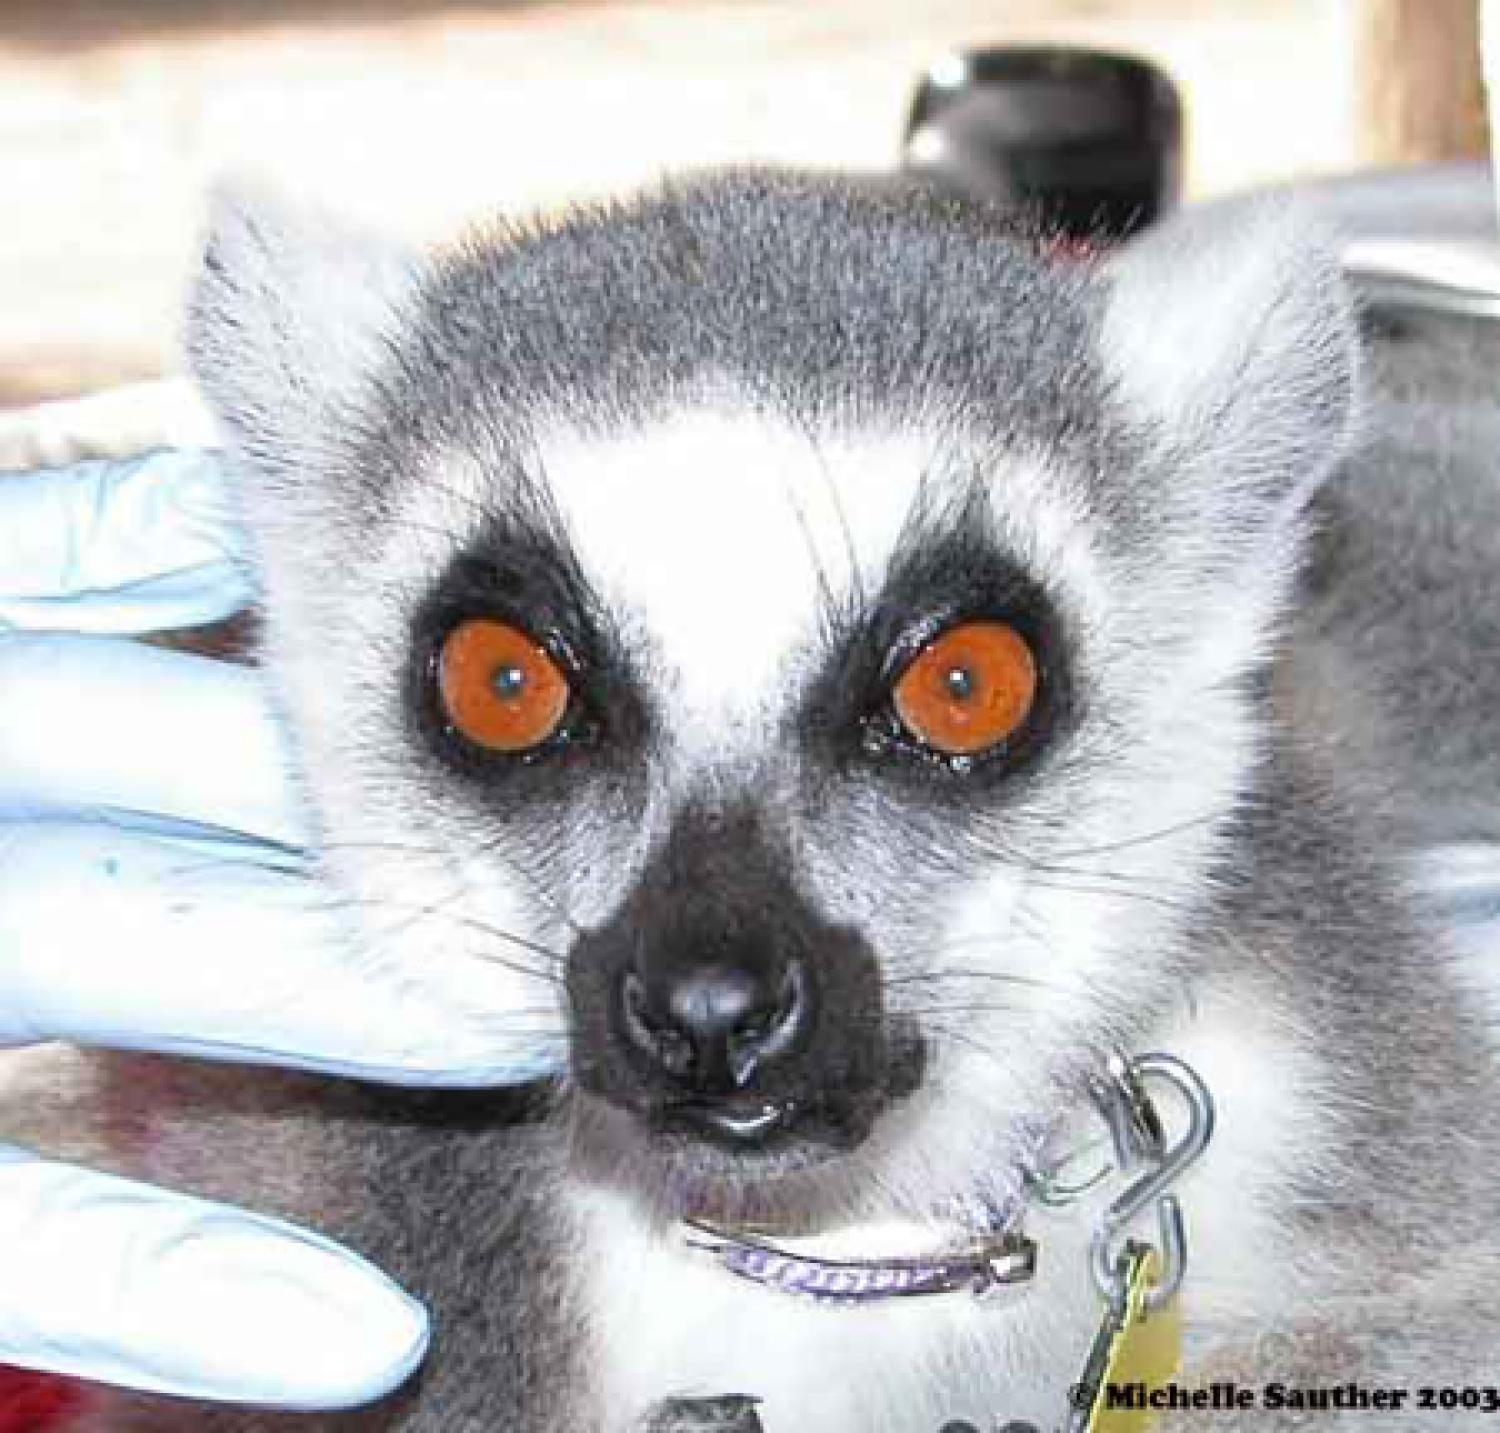 Lemur face with large red eyes